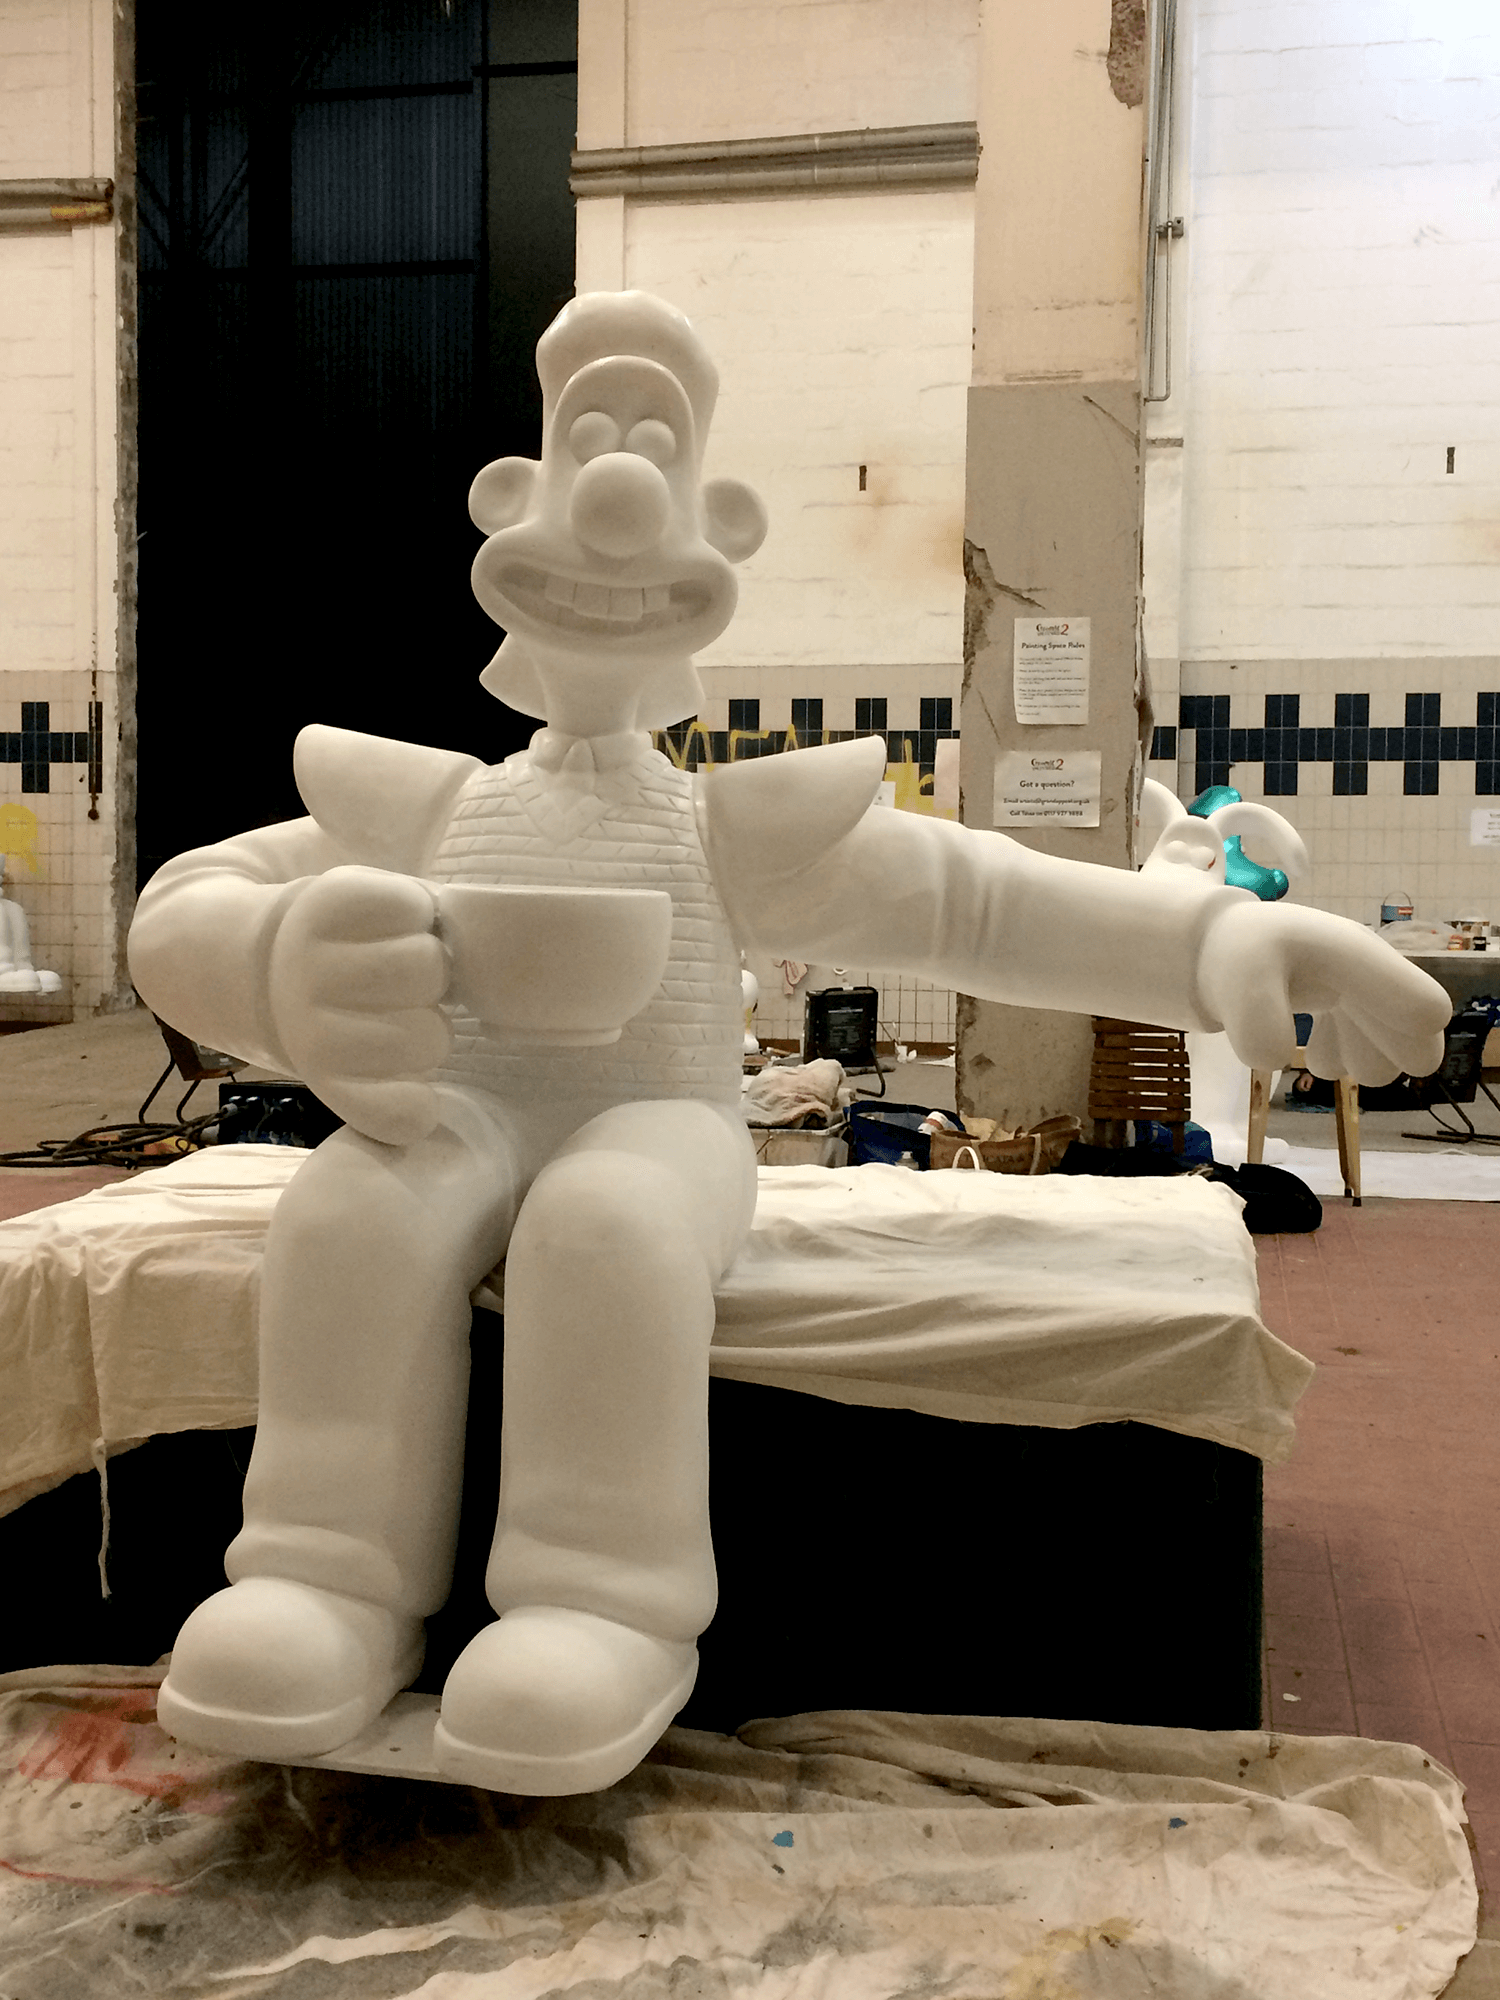 The 'blank' Wallace sculpture. He has his arm out like that because on the trail he will be sitting on a bench, welcoming trail visitors to join him!